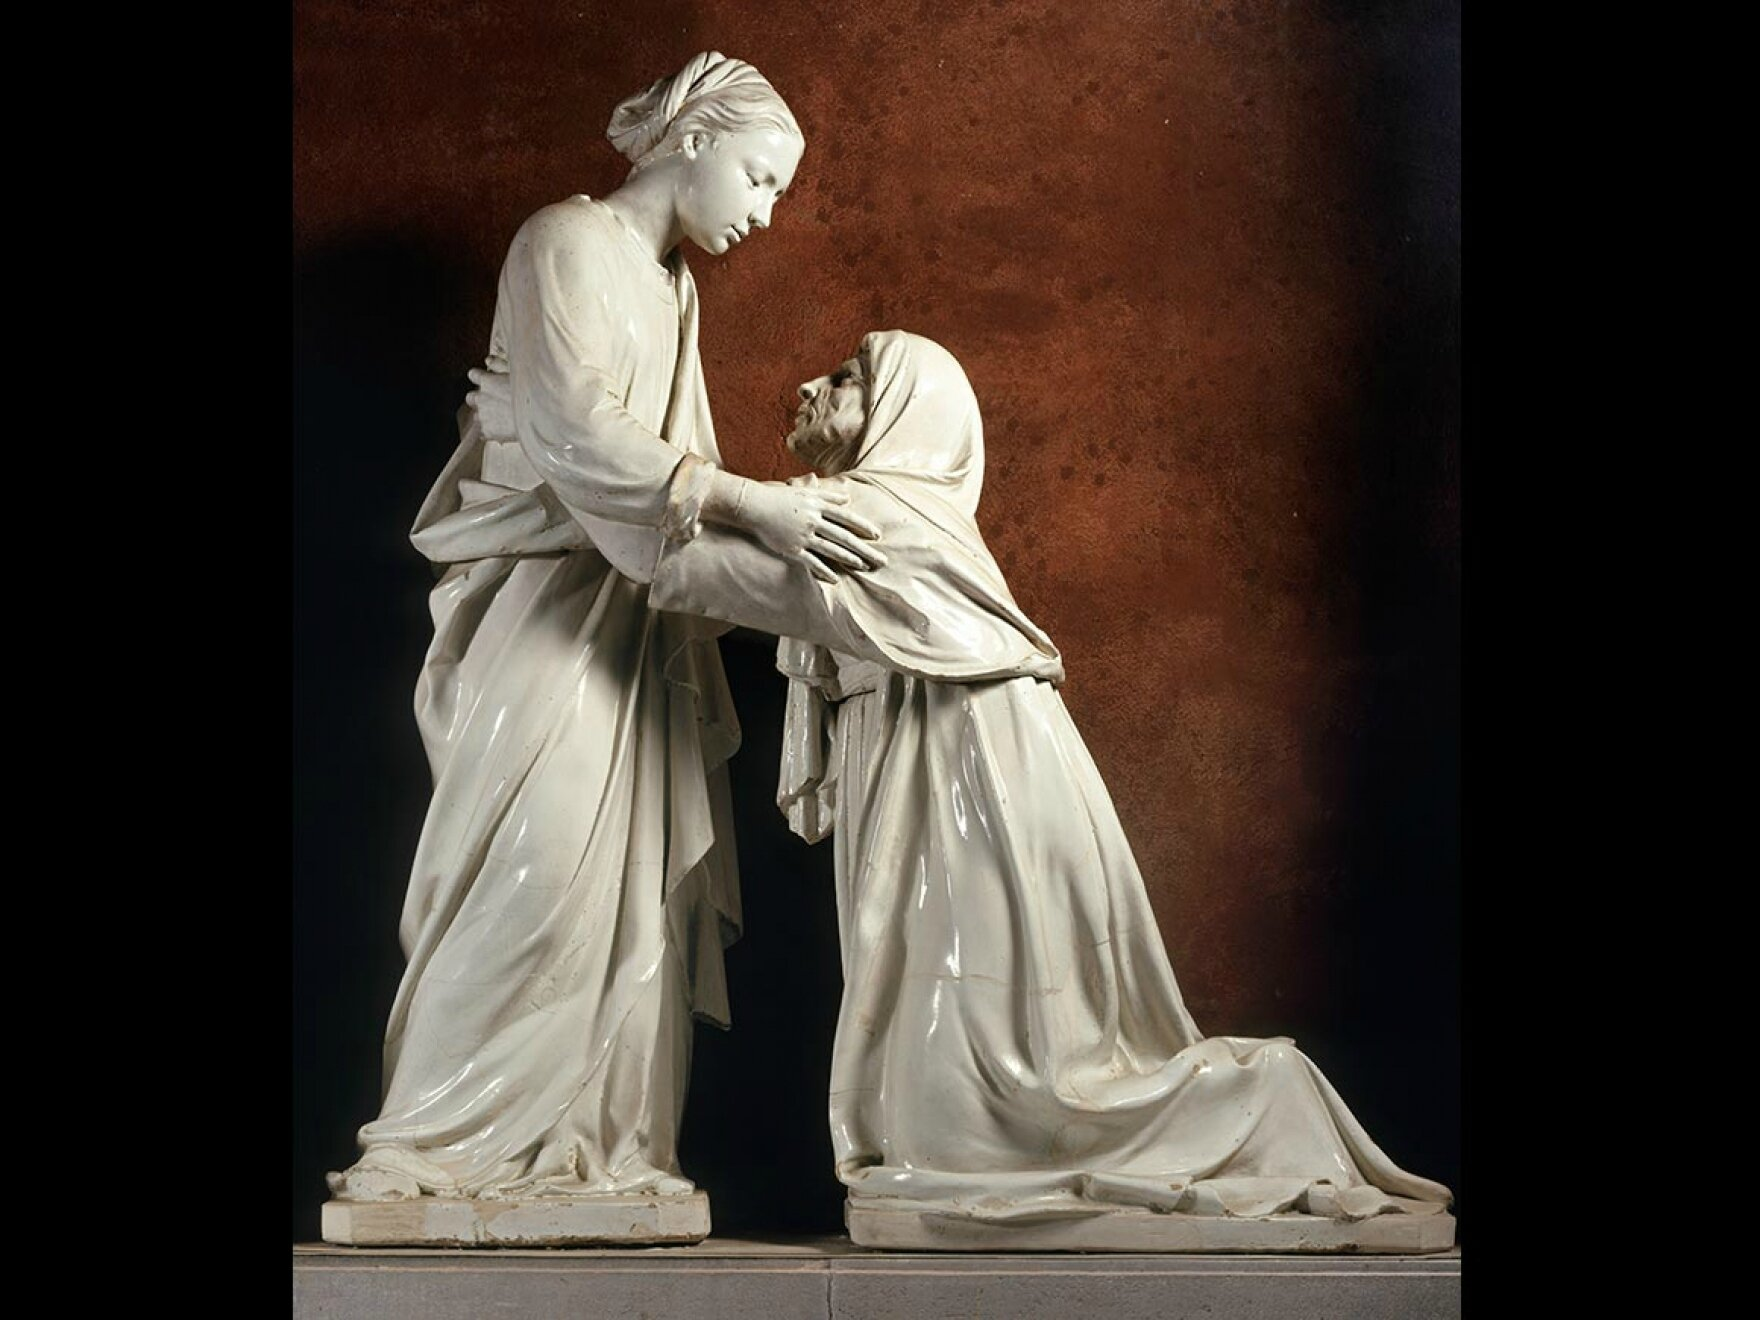 Museum of Fine Arts, Boston, Presents the First Major US Exhibition of Della Robbia Sculpture